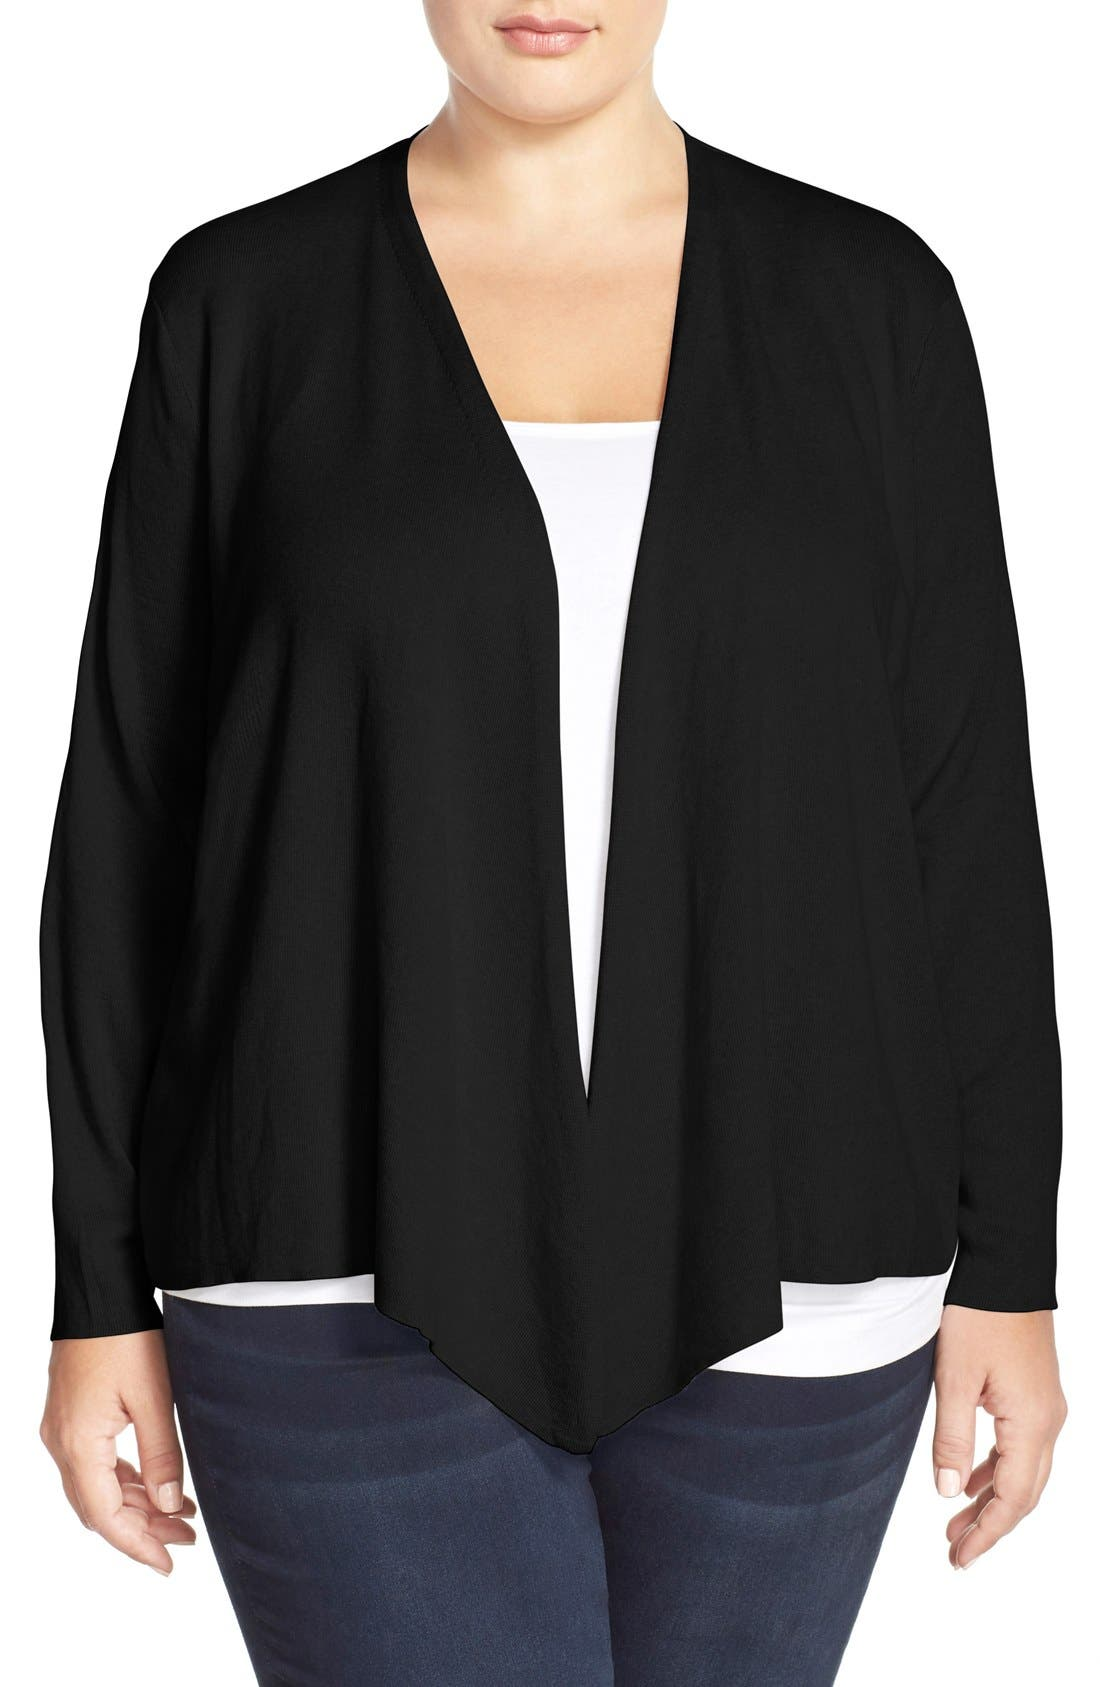 4-Way Convertible Cardigan,                             Main thumbnail 1, color,                             BLACK ONYX